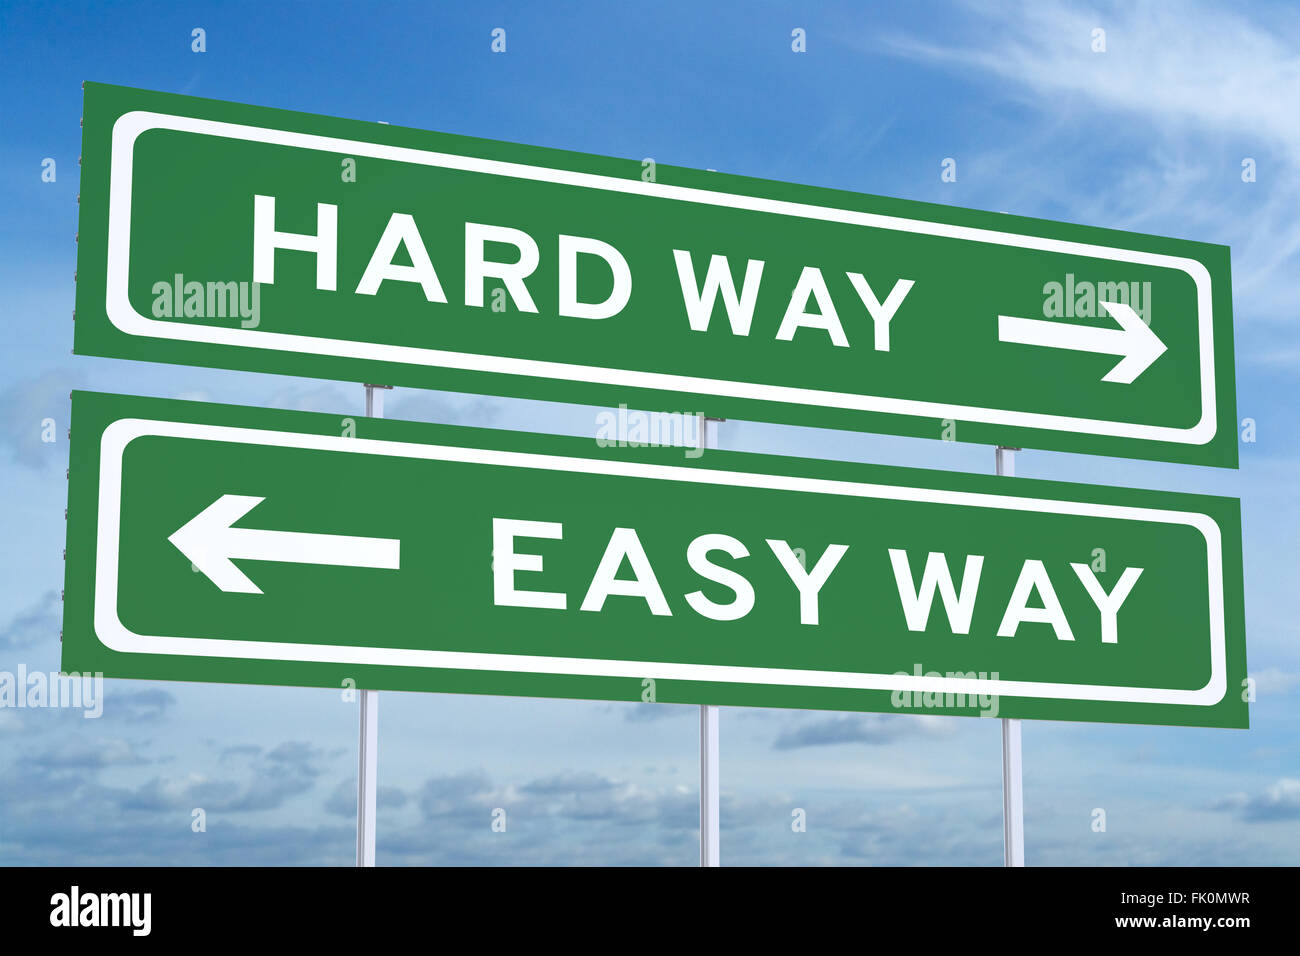 Hard way or Easy way concept on road sign - Stock Image